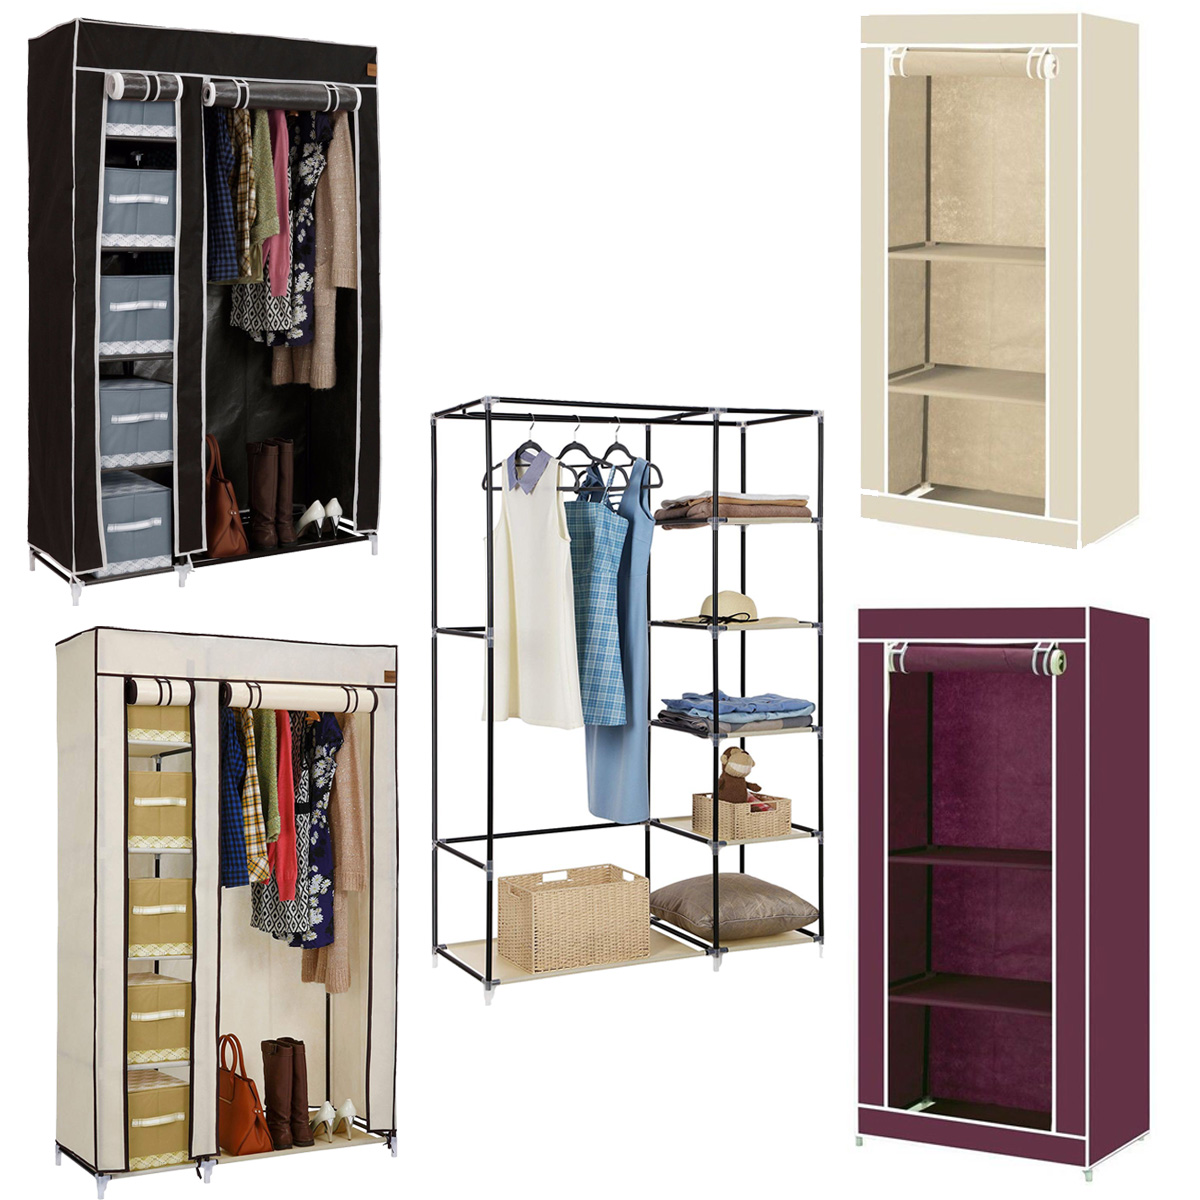 Details About Folding Fabric Canvas Wardrobe Close Storage Cupboard Student Kids Home Bedroom